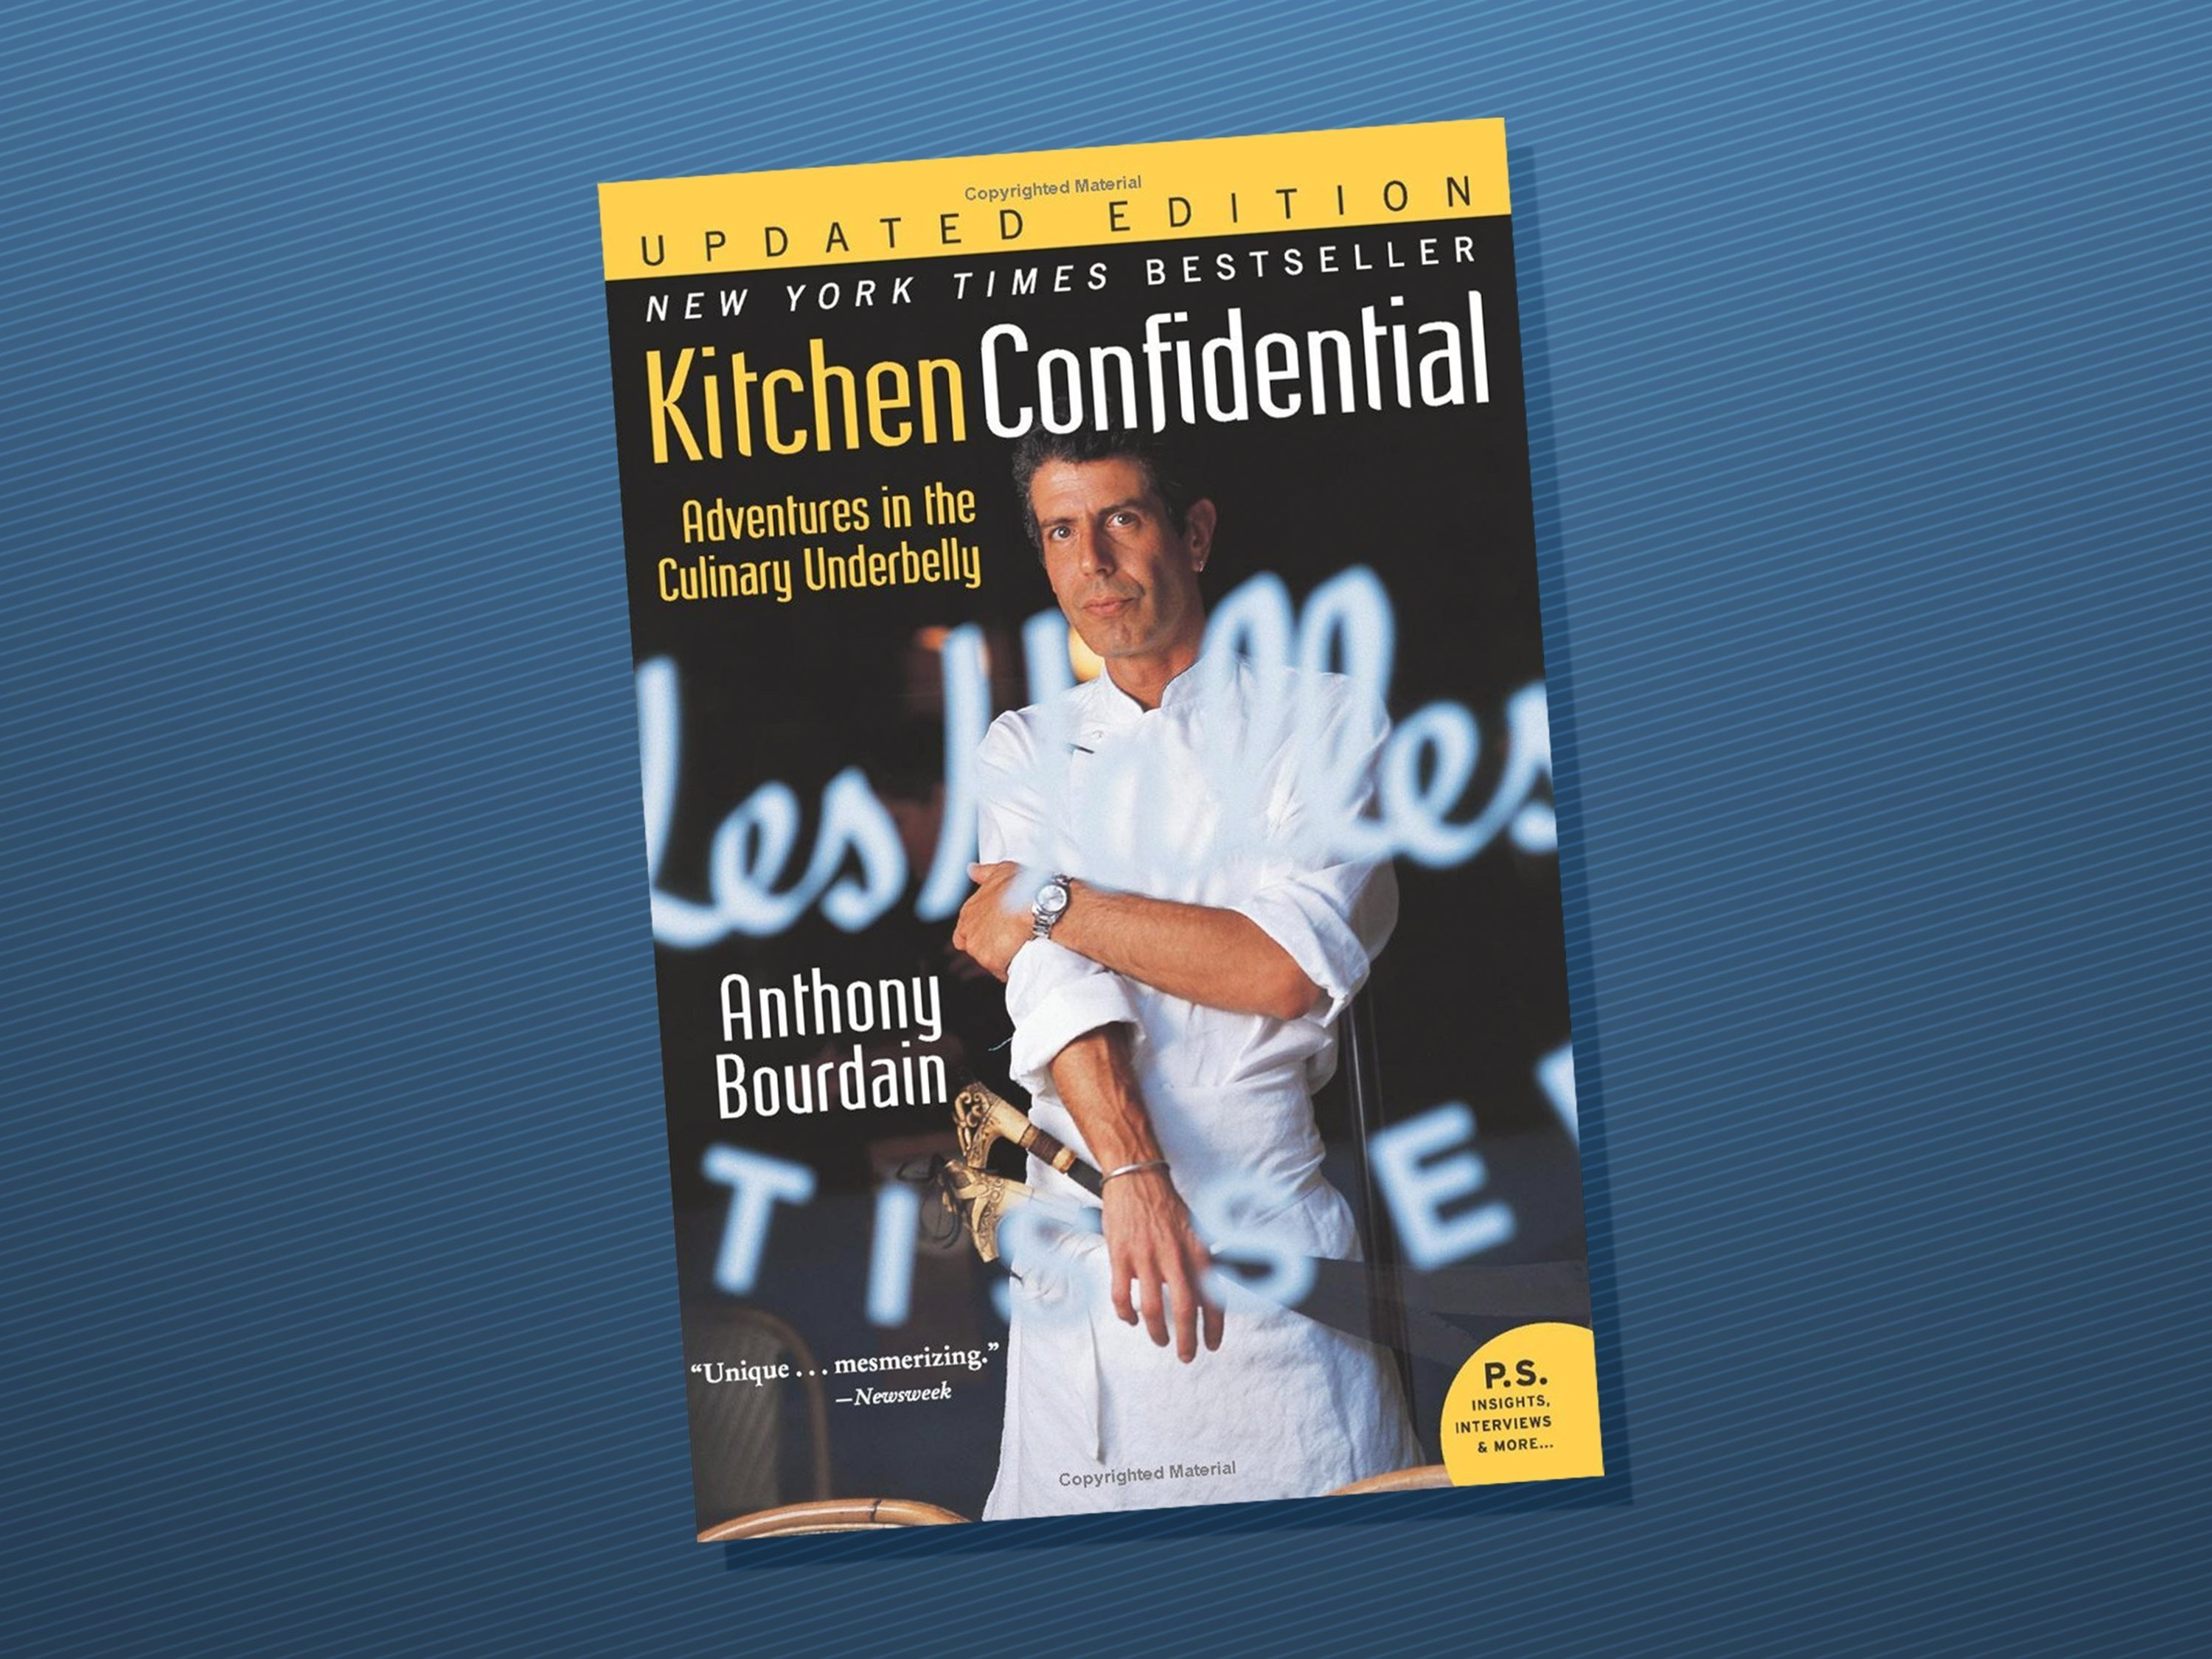 Anthony Bourdain\'s \'Kitchen Confidential\' becomes Amazon top sel ...